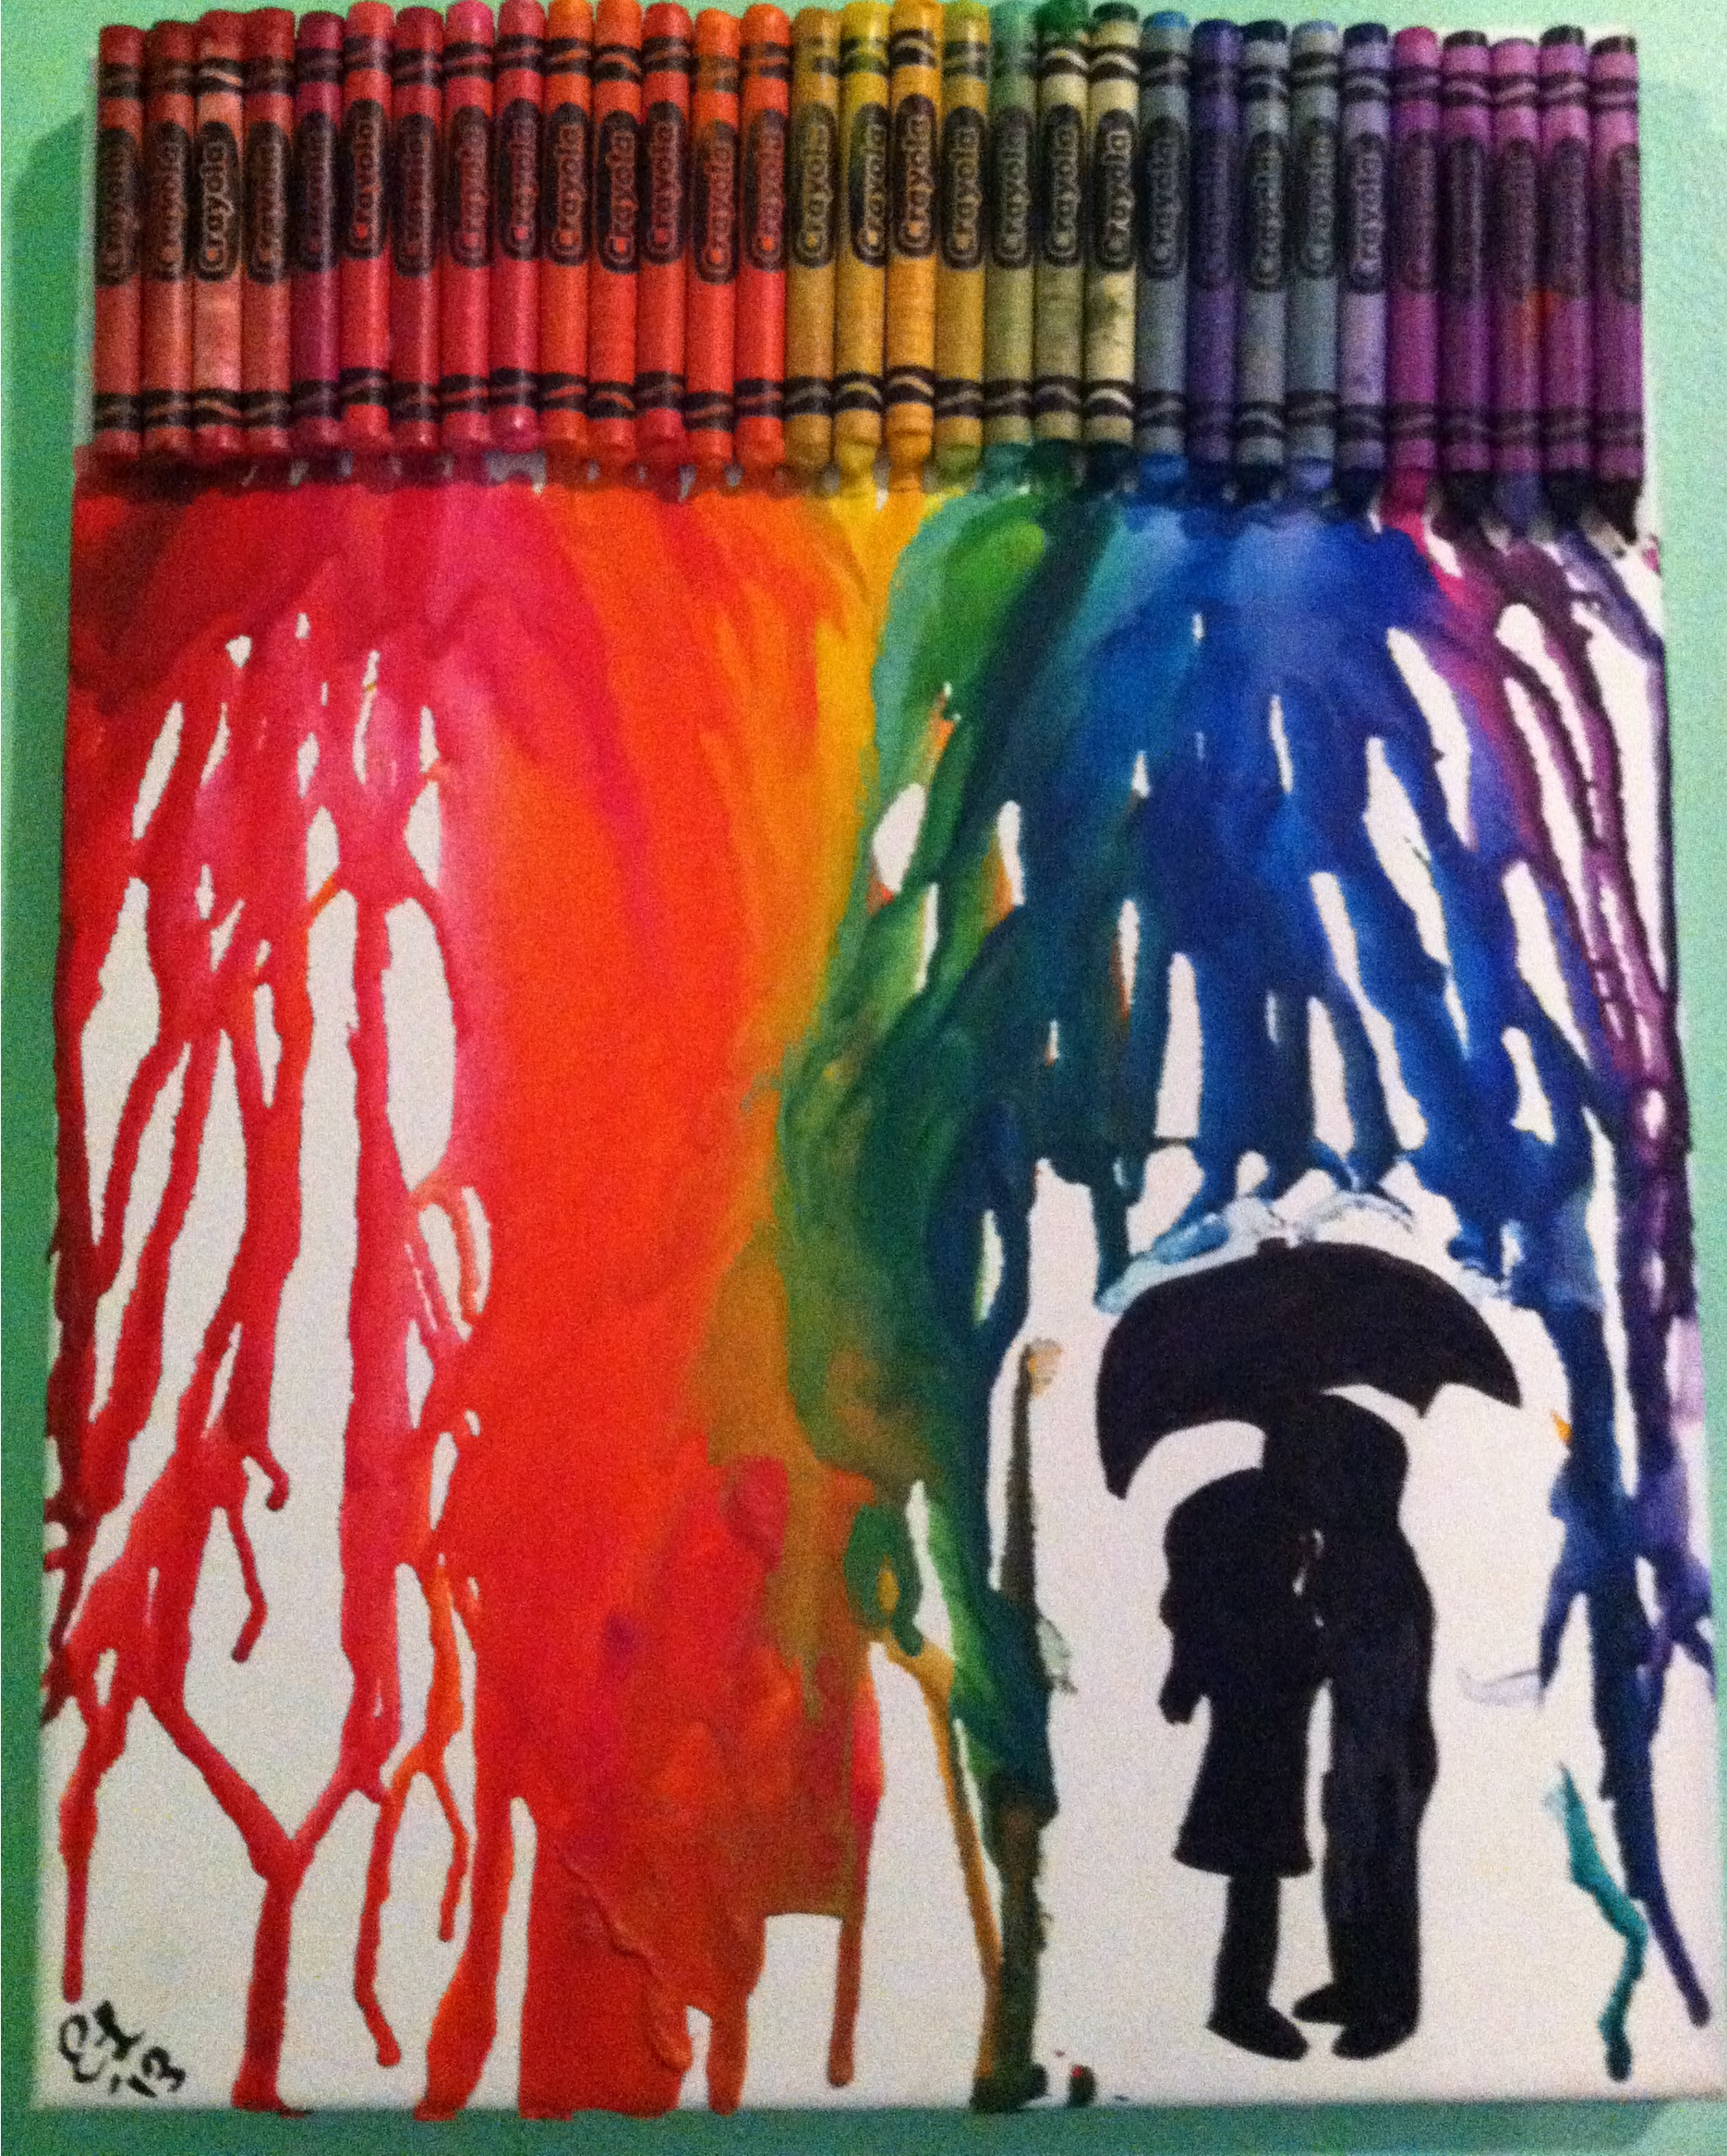 gt  Gallery For  gt  couple kissing under umbrella silhouette crayon artCouple Silhouette Umbrella Crayon Art